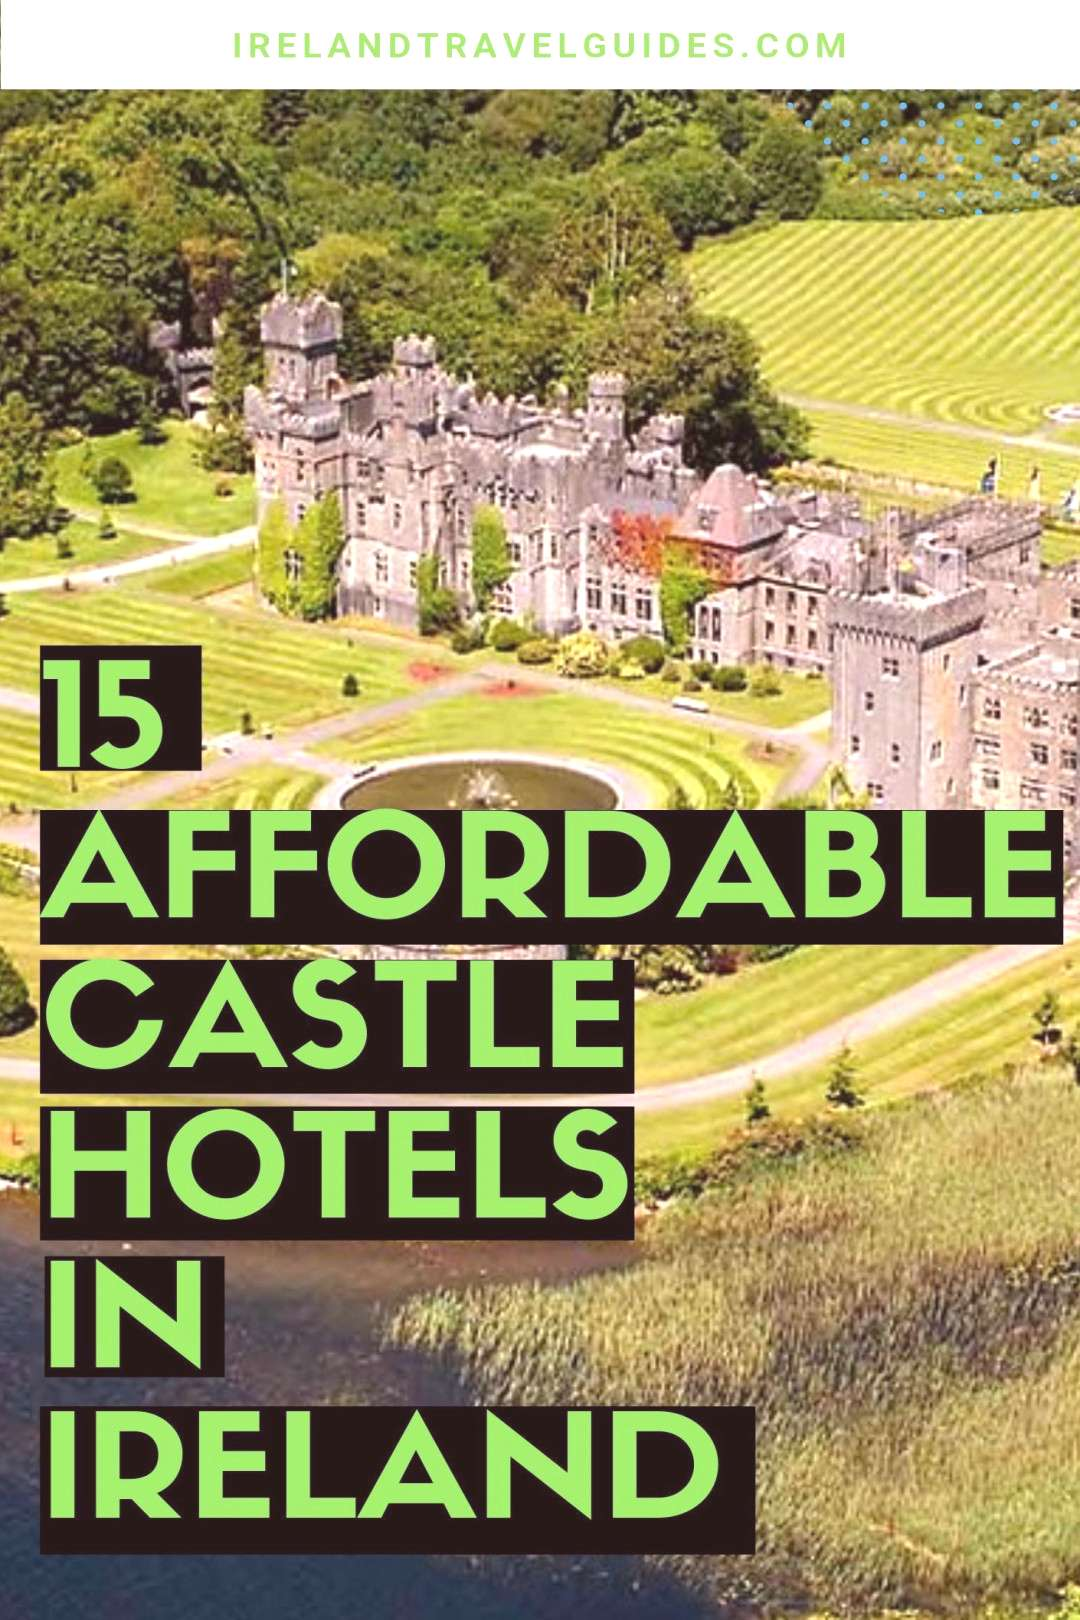 15 Affordable Castle Hotels In Ireland That Won't Break The Bank 15 Affordable Castle Hotels In Ire